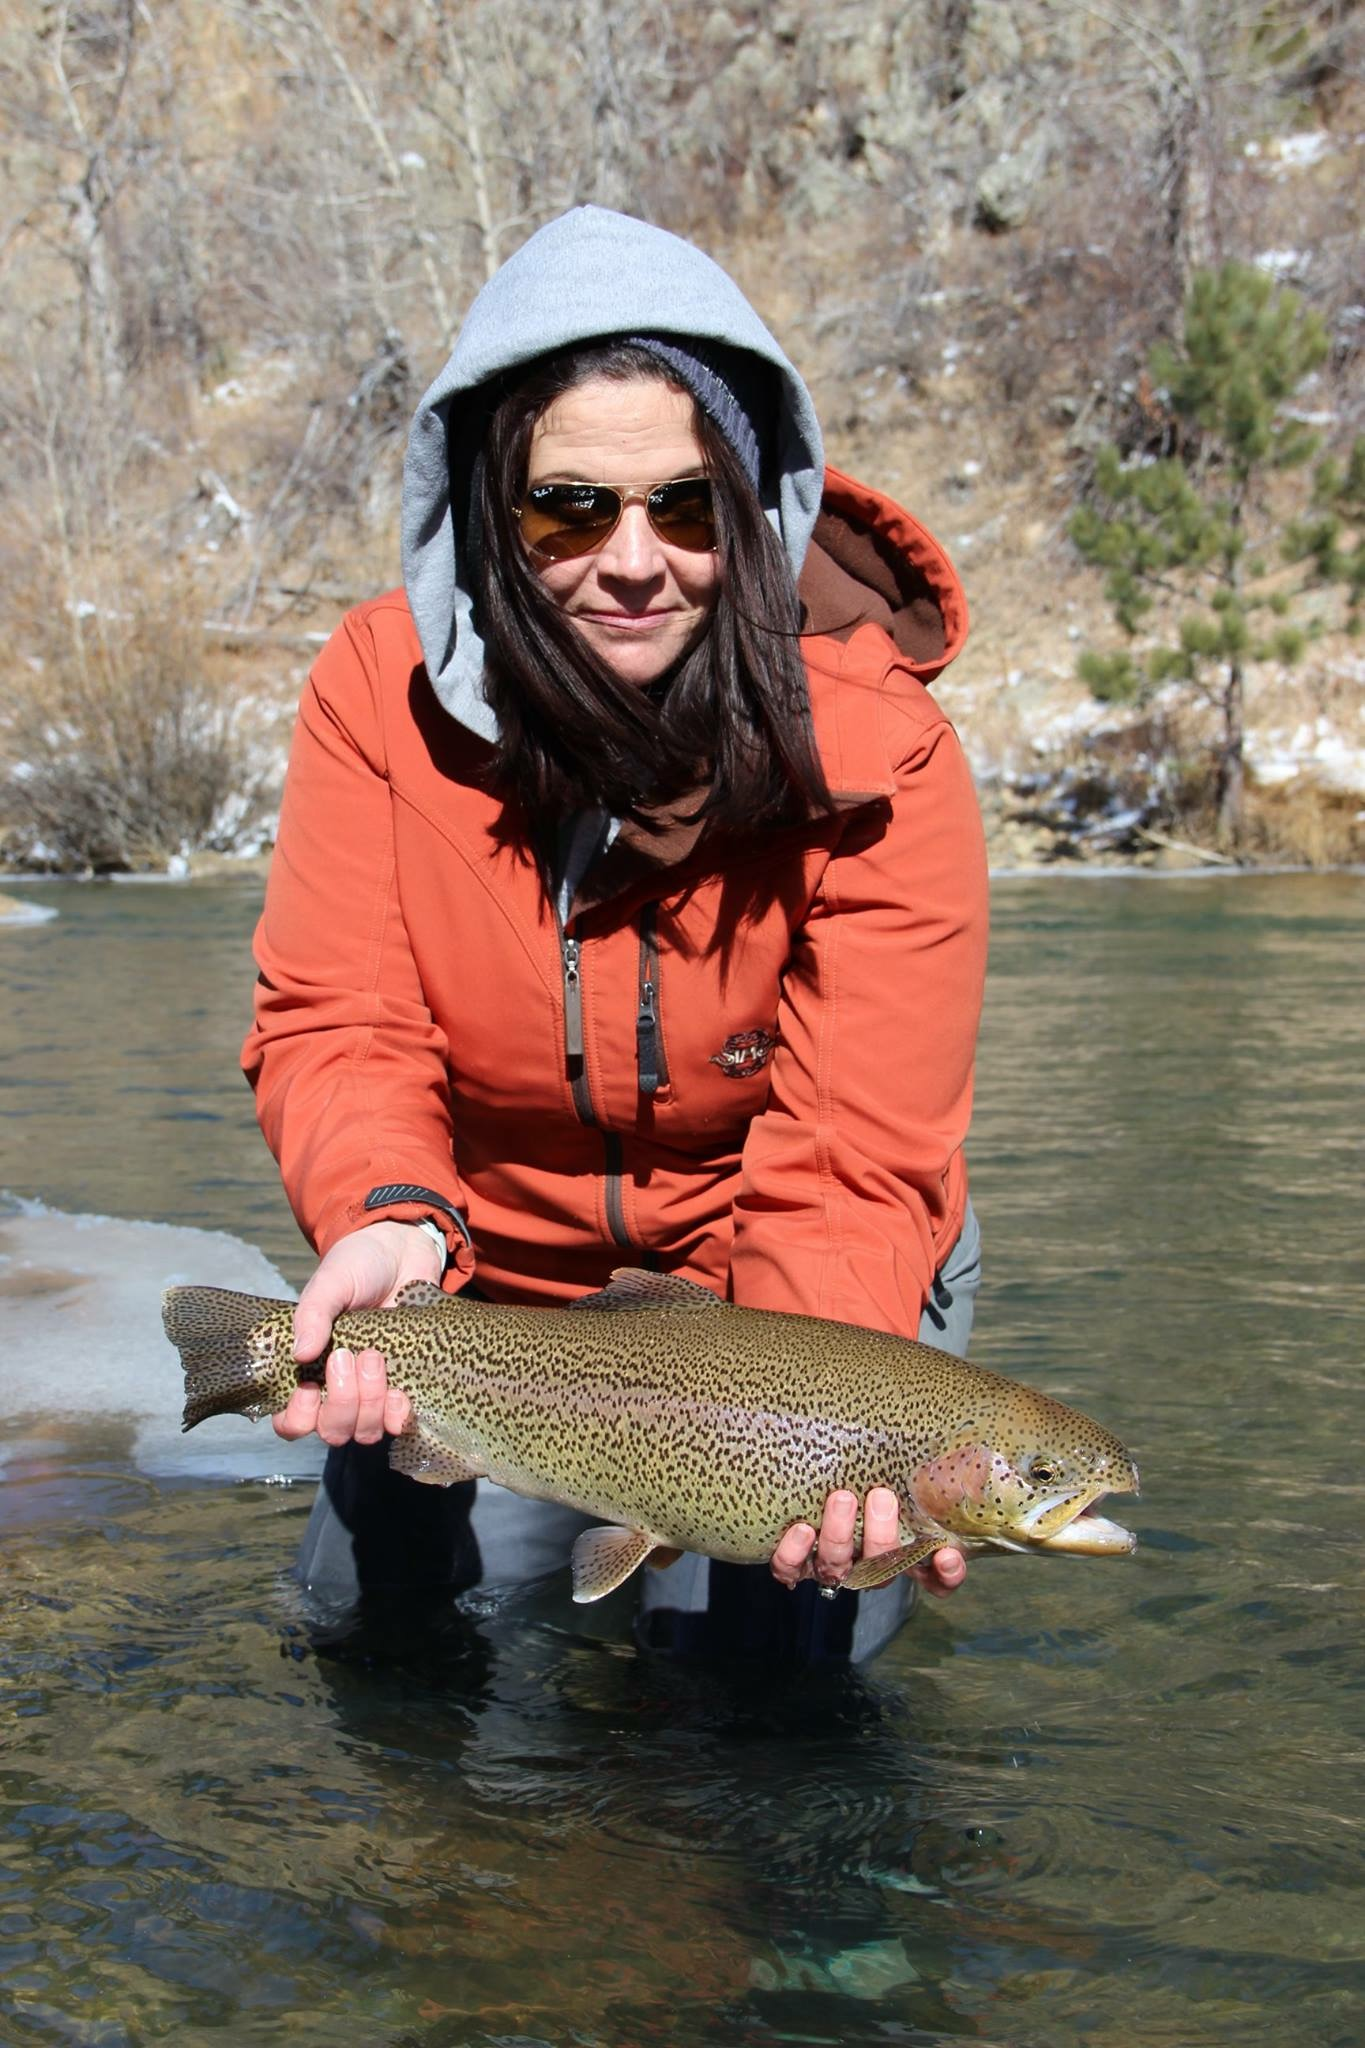 Kelli Jackson - Founder & Owner AnglherAs a native of Colorado Kelli grew up an outdoor girl. Being the youngest and only girl of five kids, she enjoyed playing in the dirt and running around with the boys. Kelli began fly fishing in Gunnison, Colorado while pursing her degree at Western State Colorado University. Post college she returned to her hometown Eagle, CO and worked in a fly shop and bartended.Noticing a lack of women's fly fishing apparel and classes geared towards women interested in the sport, Kelli created Anglher. A brand for women by women. Kelli also began hosting all inclusive women only destination trips (2008) and launched her kids line, Lil Buggers (after having twins in 2015).When this anglher isn't out on the water she enjoys running, mountain biking, snowshoeing and traveling with her husband and twin boys.Her next bucket list fishing experiences are Christmas Island April 2019 and Iceland 2019.Non profits she currently works with are: The Leukemia & Lymphoma Society, Casting for Recovery and The Mayfly Project.